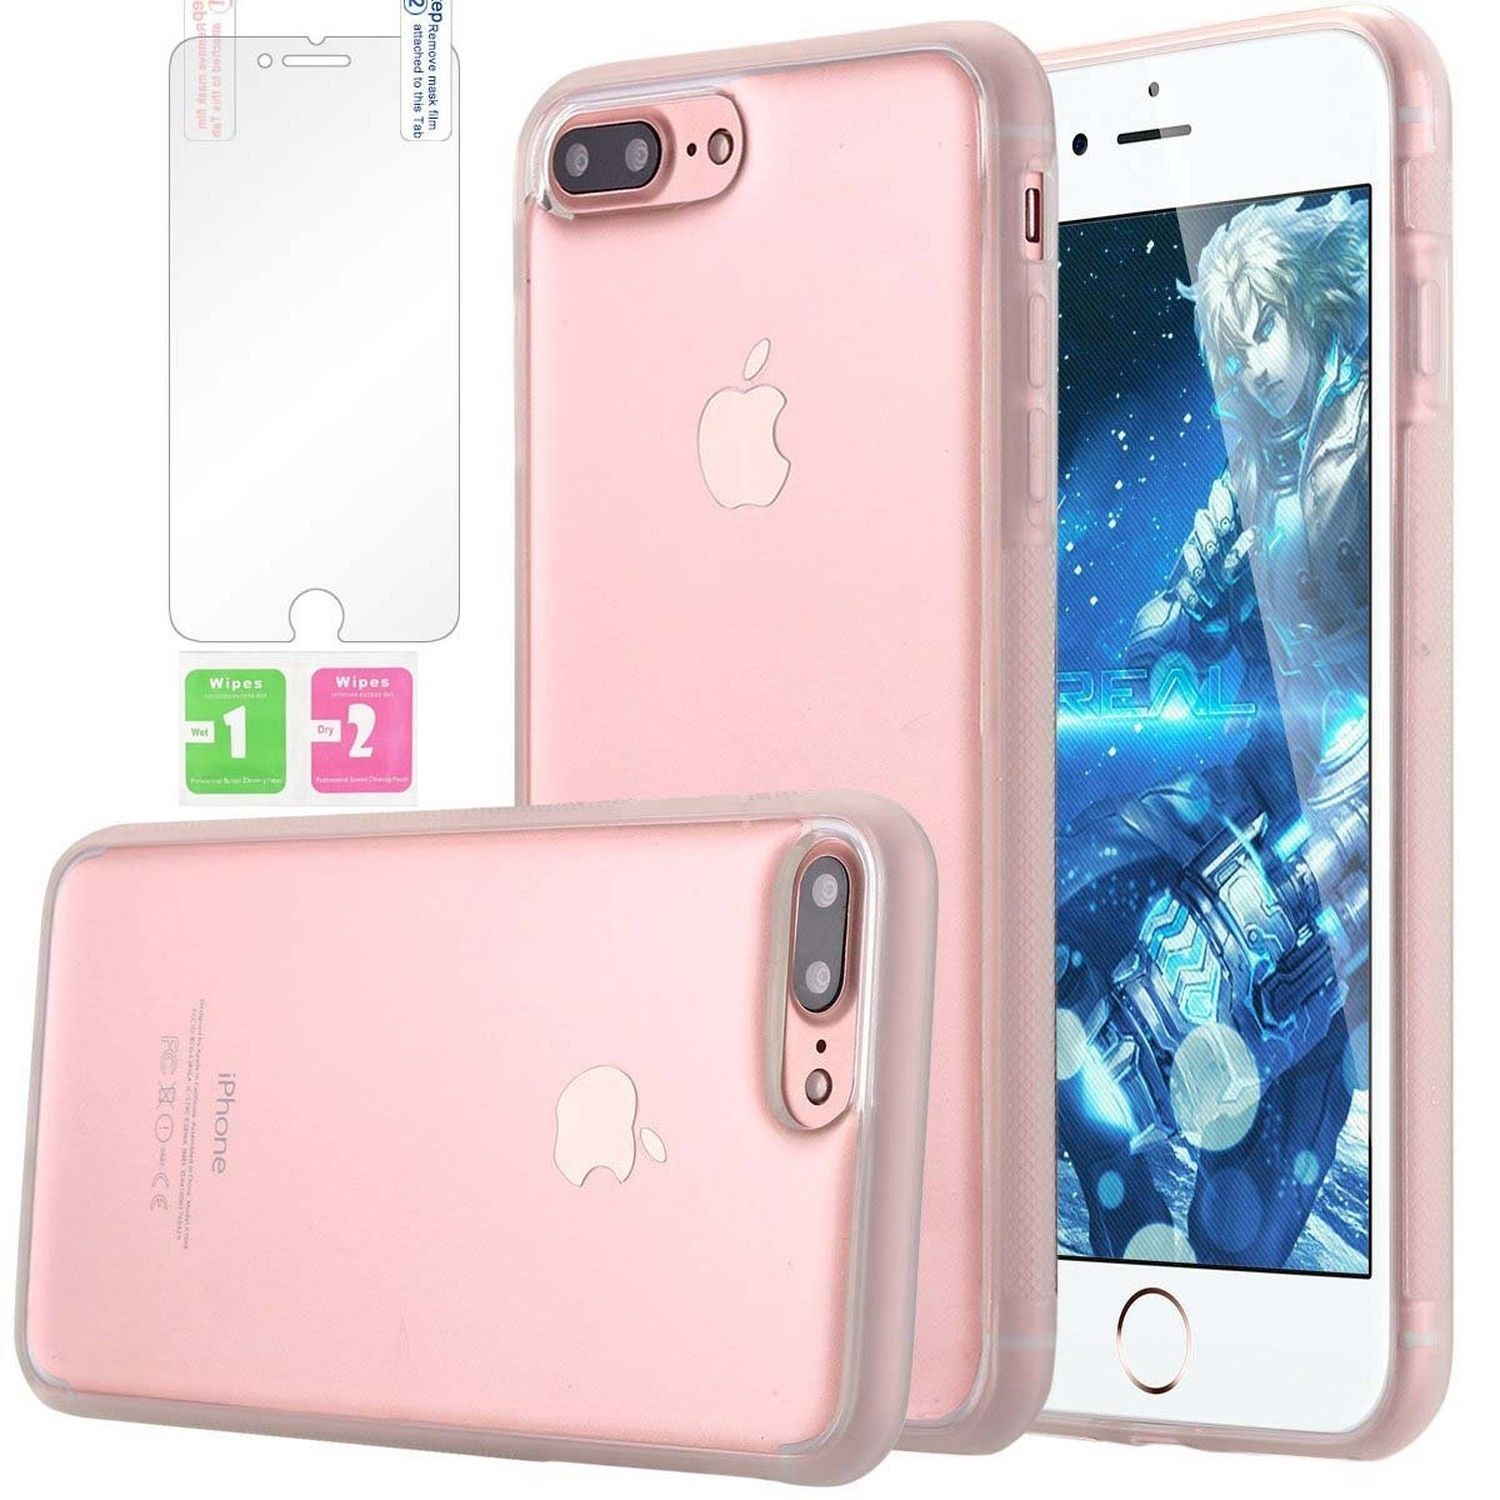 Anti Gravity Nano New Transparent Suction Phone Cover Case For Iphone 7 Plus Ebay Scheduled Via Http Www Tailwindap Iphone Clear Iphone Case Iphone 7 Plus